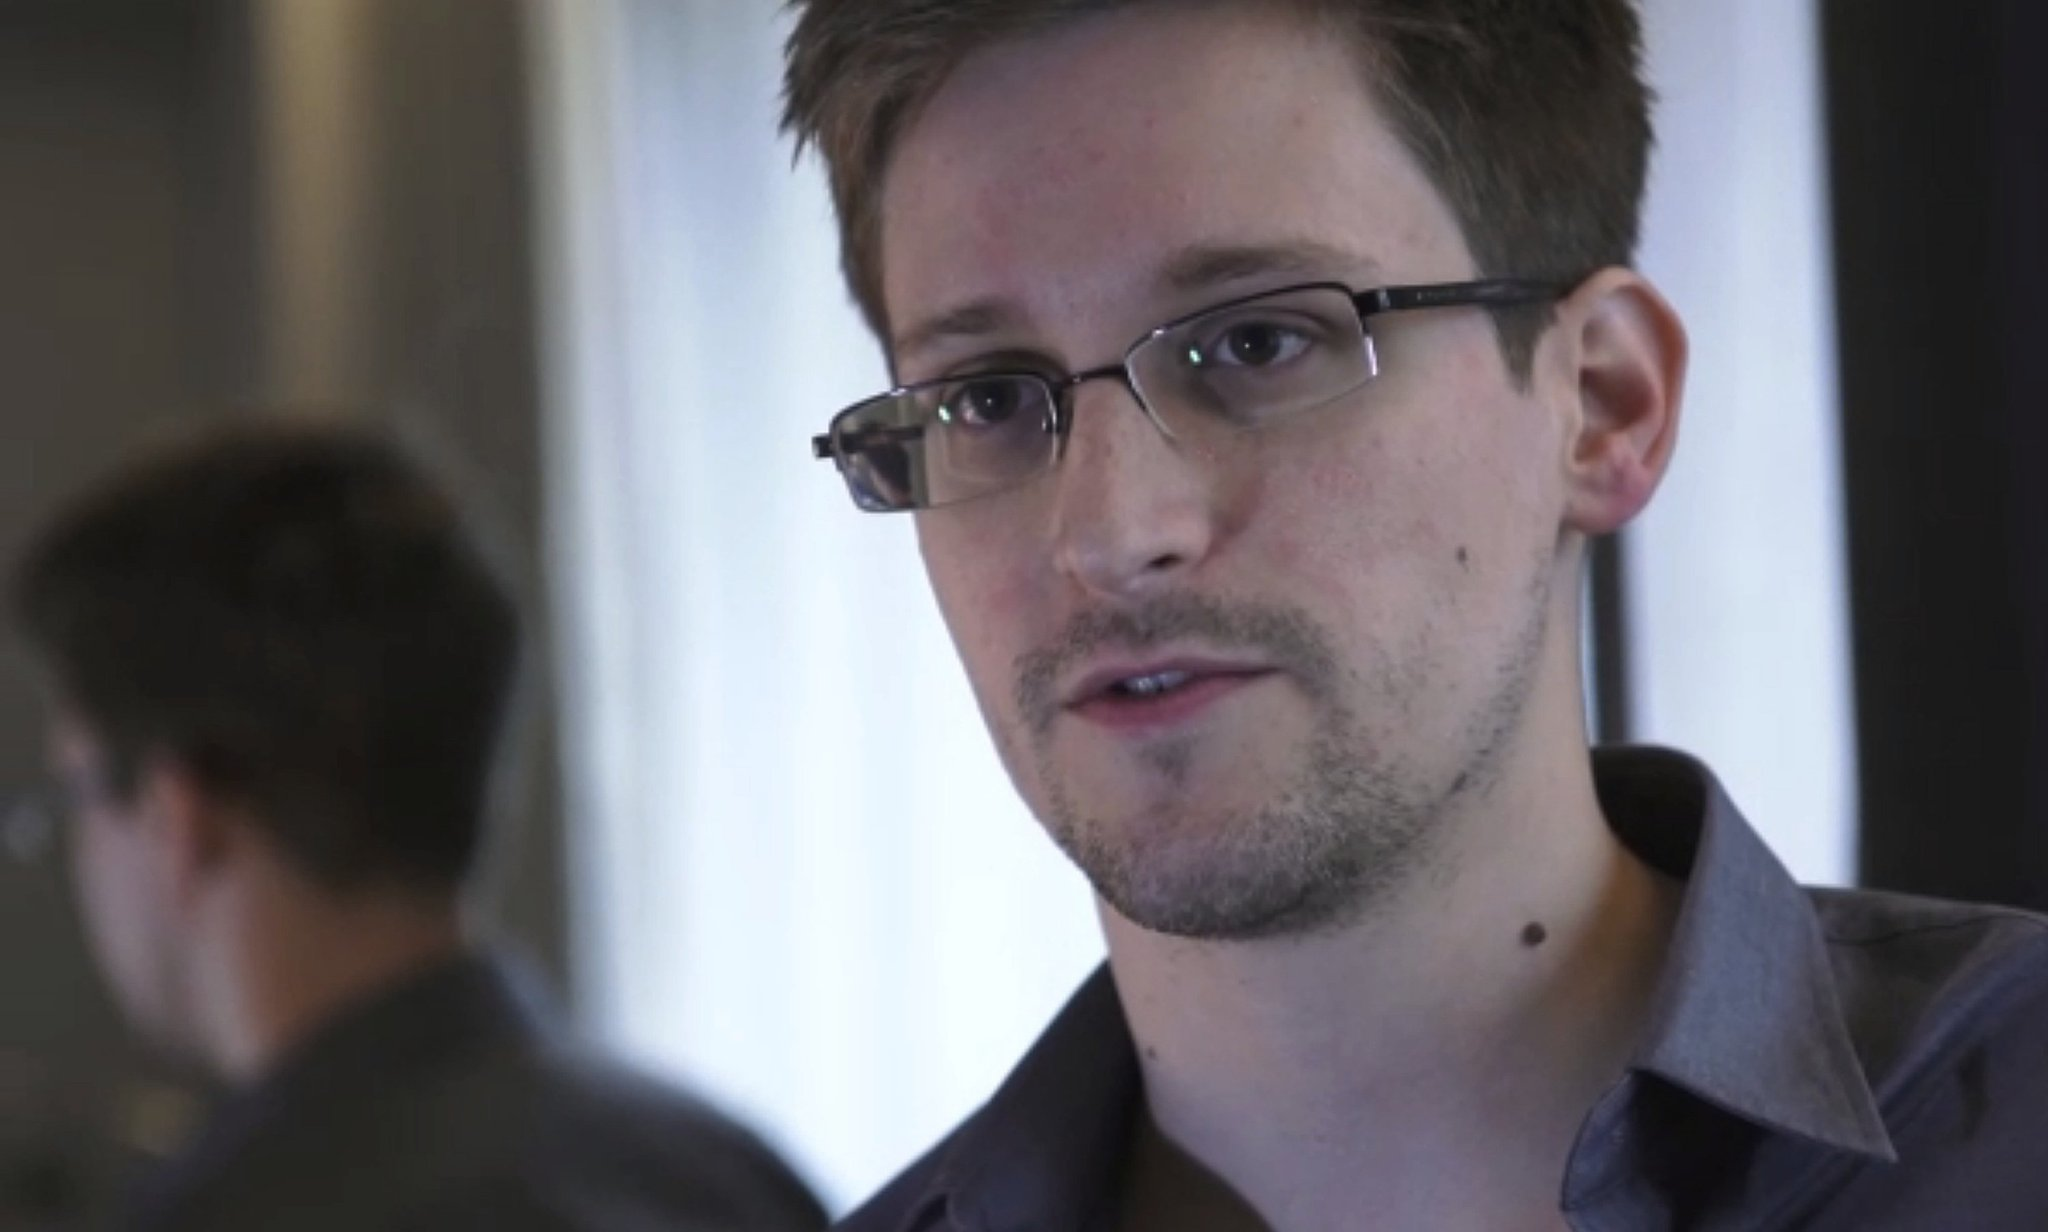 Snapchat, Snowden among top 10